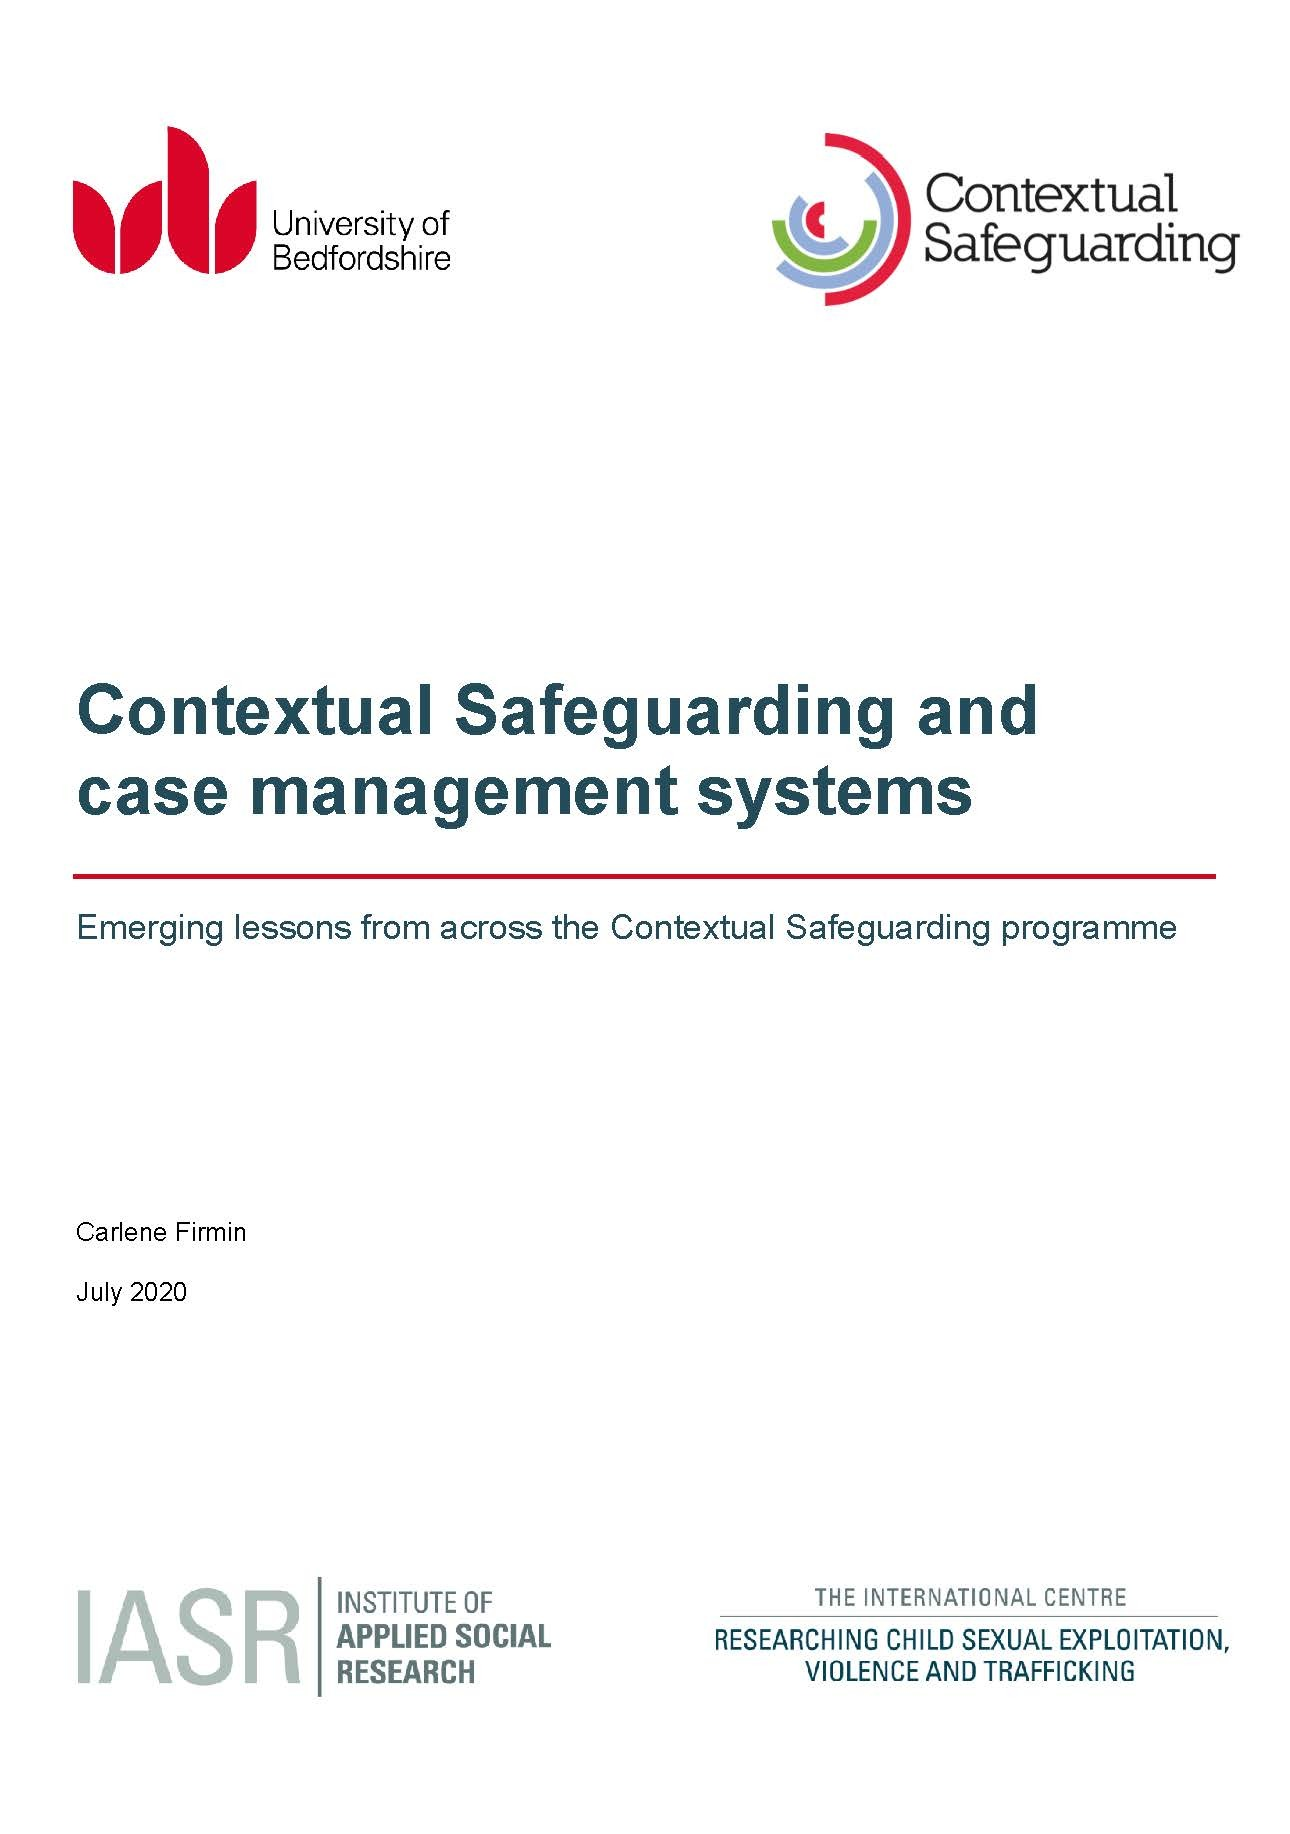 Contextual Safeguarding and case management systems